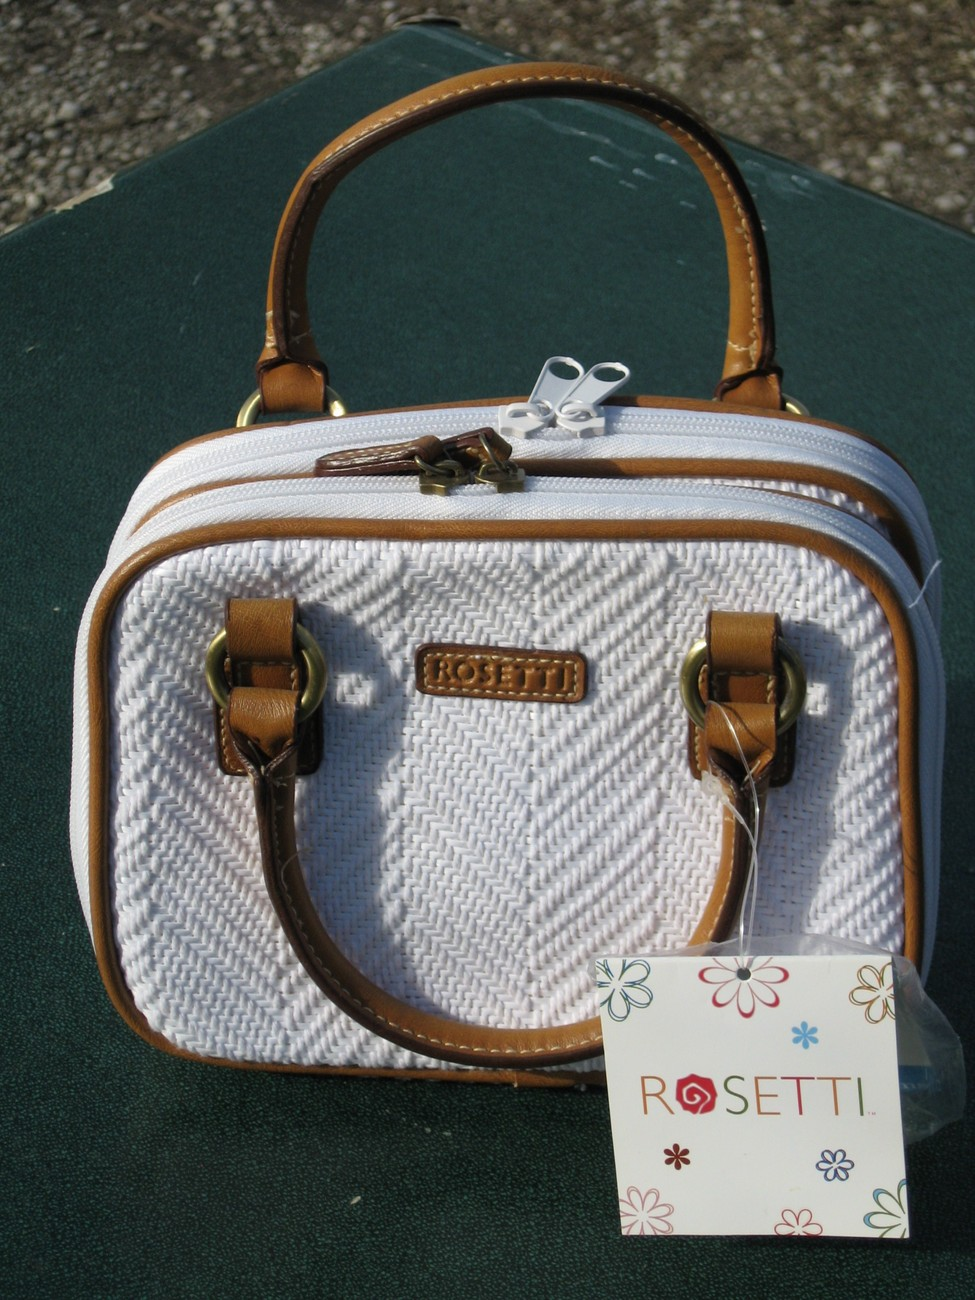 Rosetti White Weave Handbag Shoulderbag Purse NWT Bonus